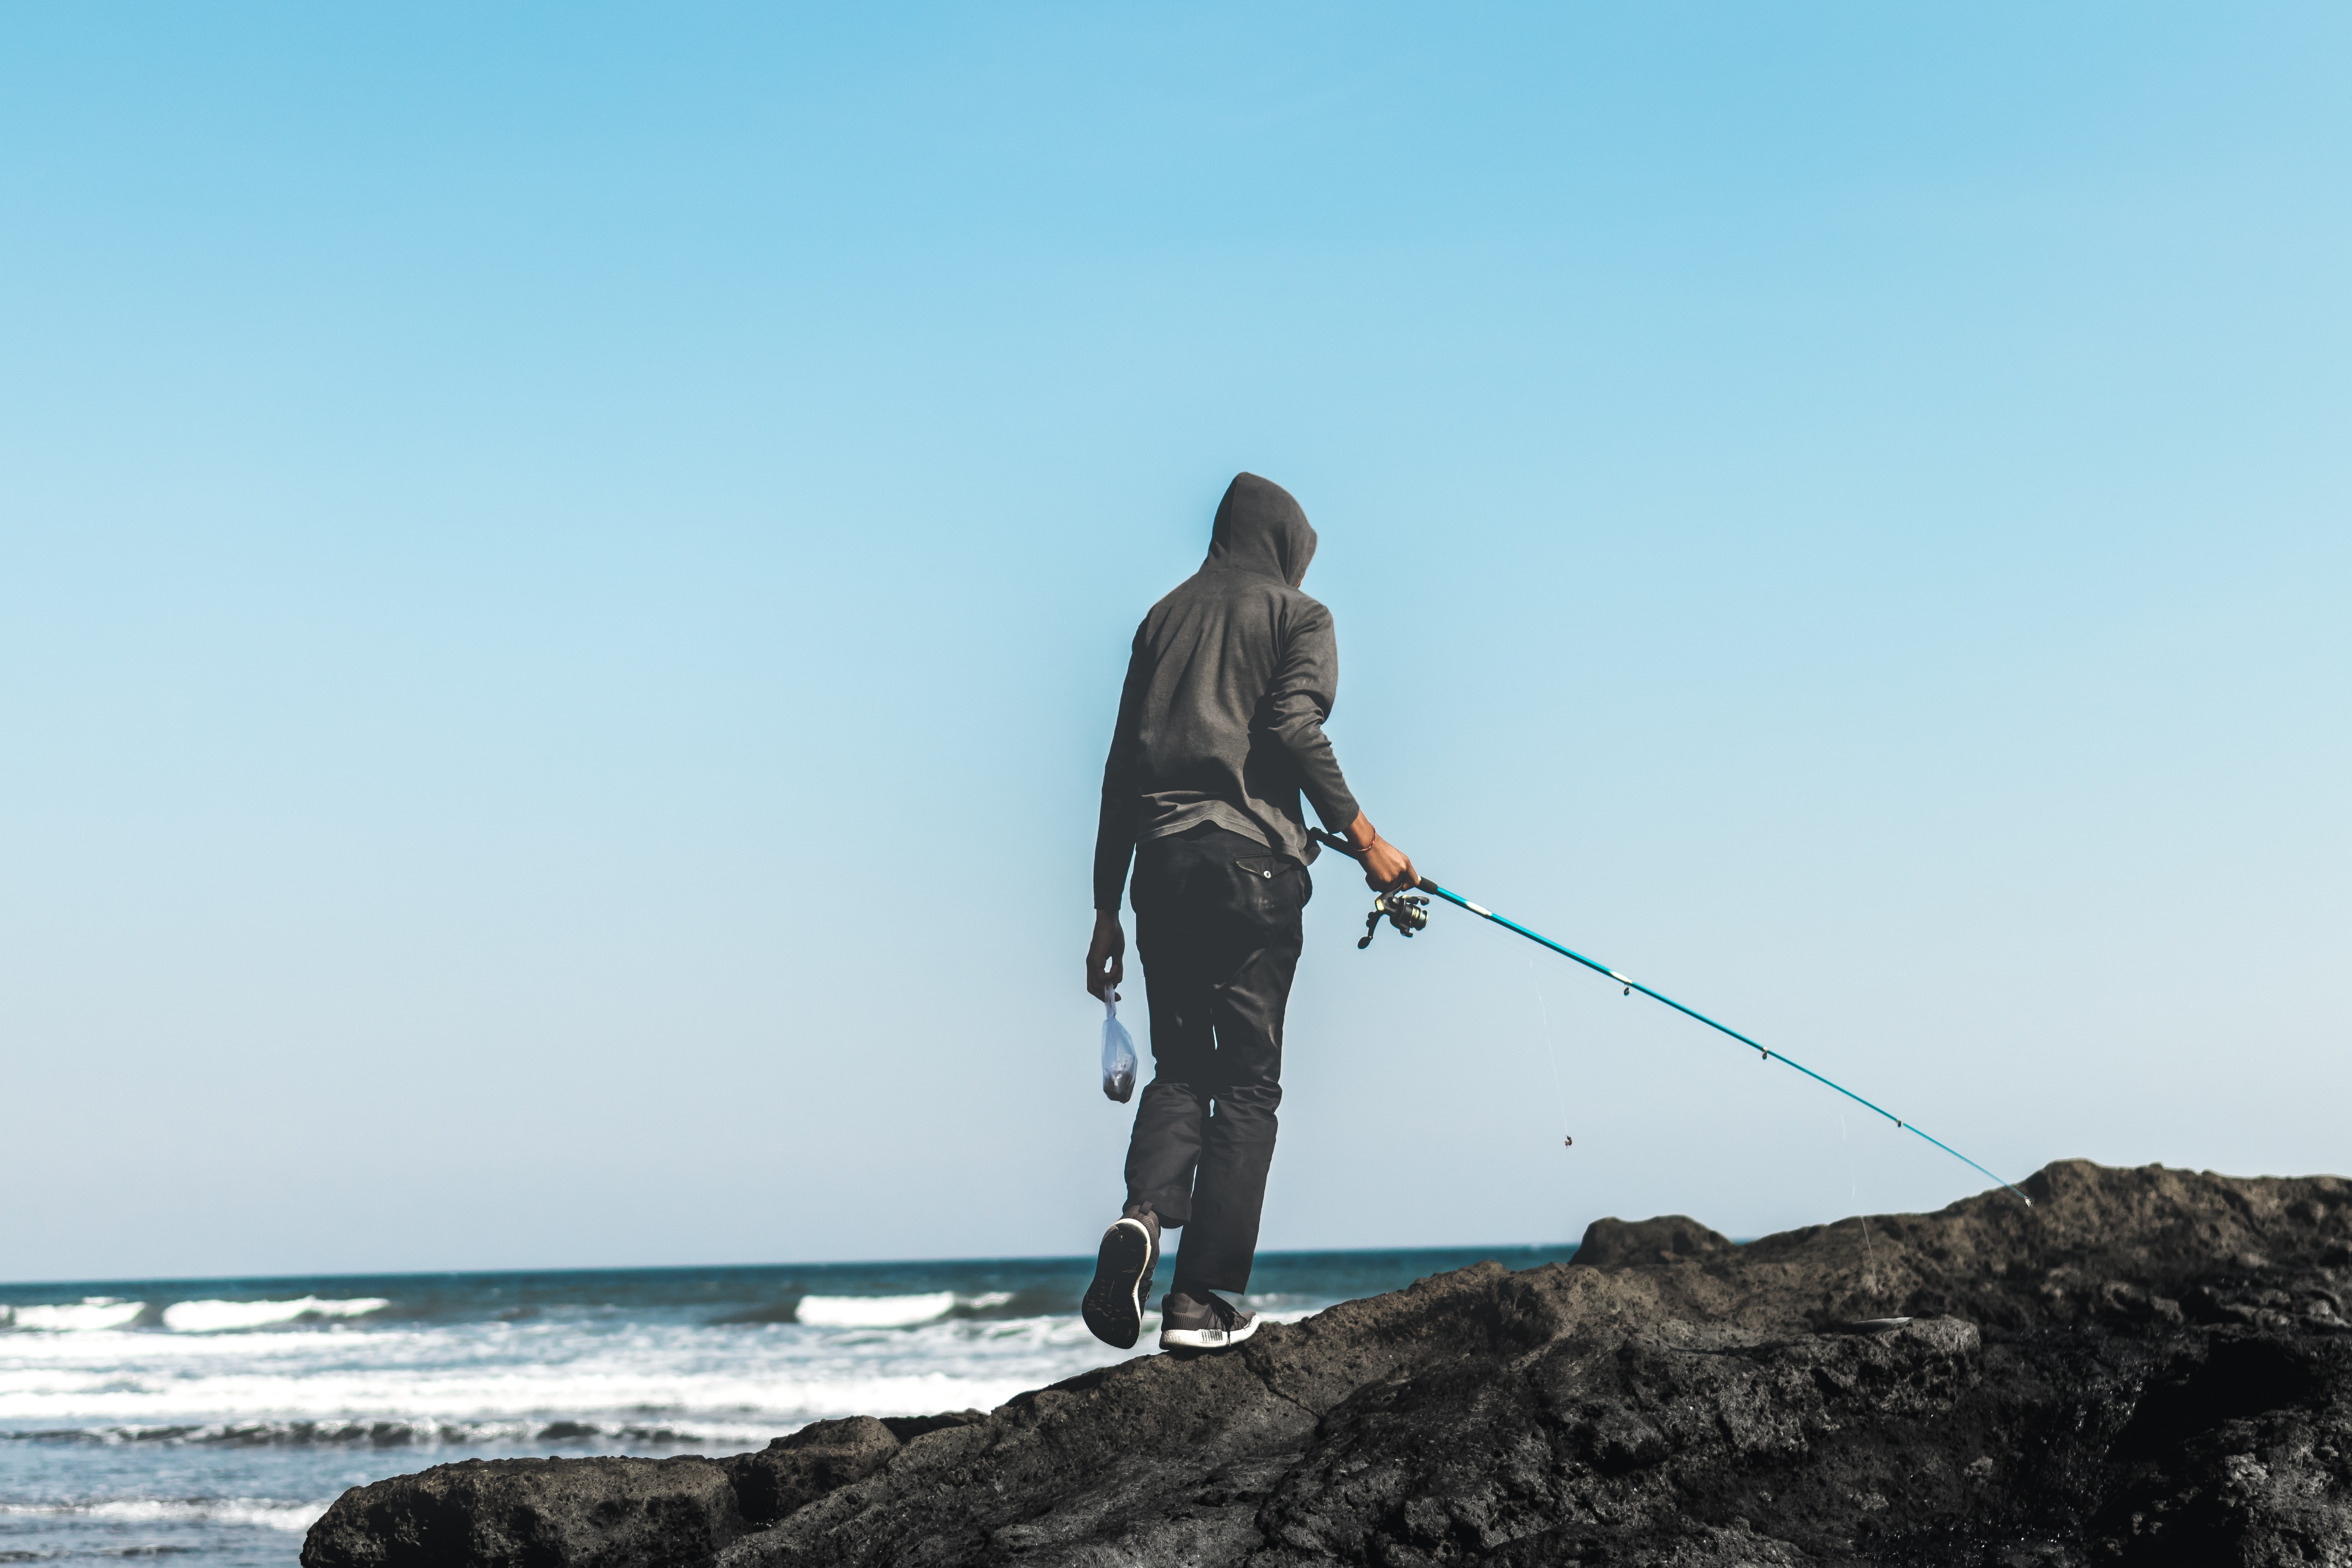 person standing on seacliff holding fishing rod